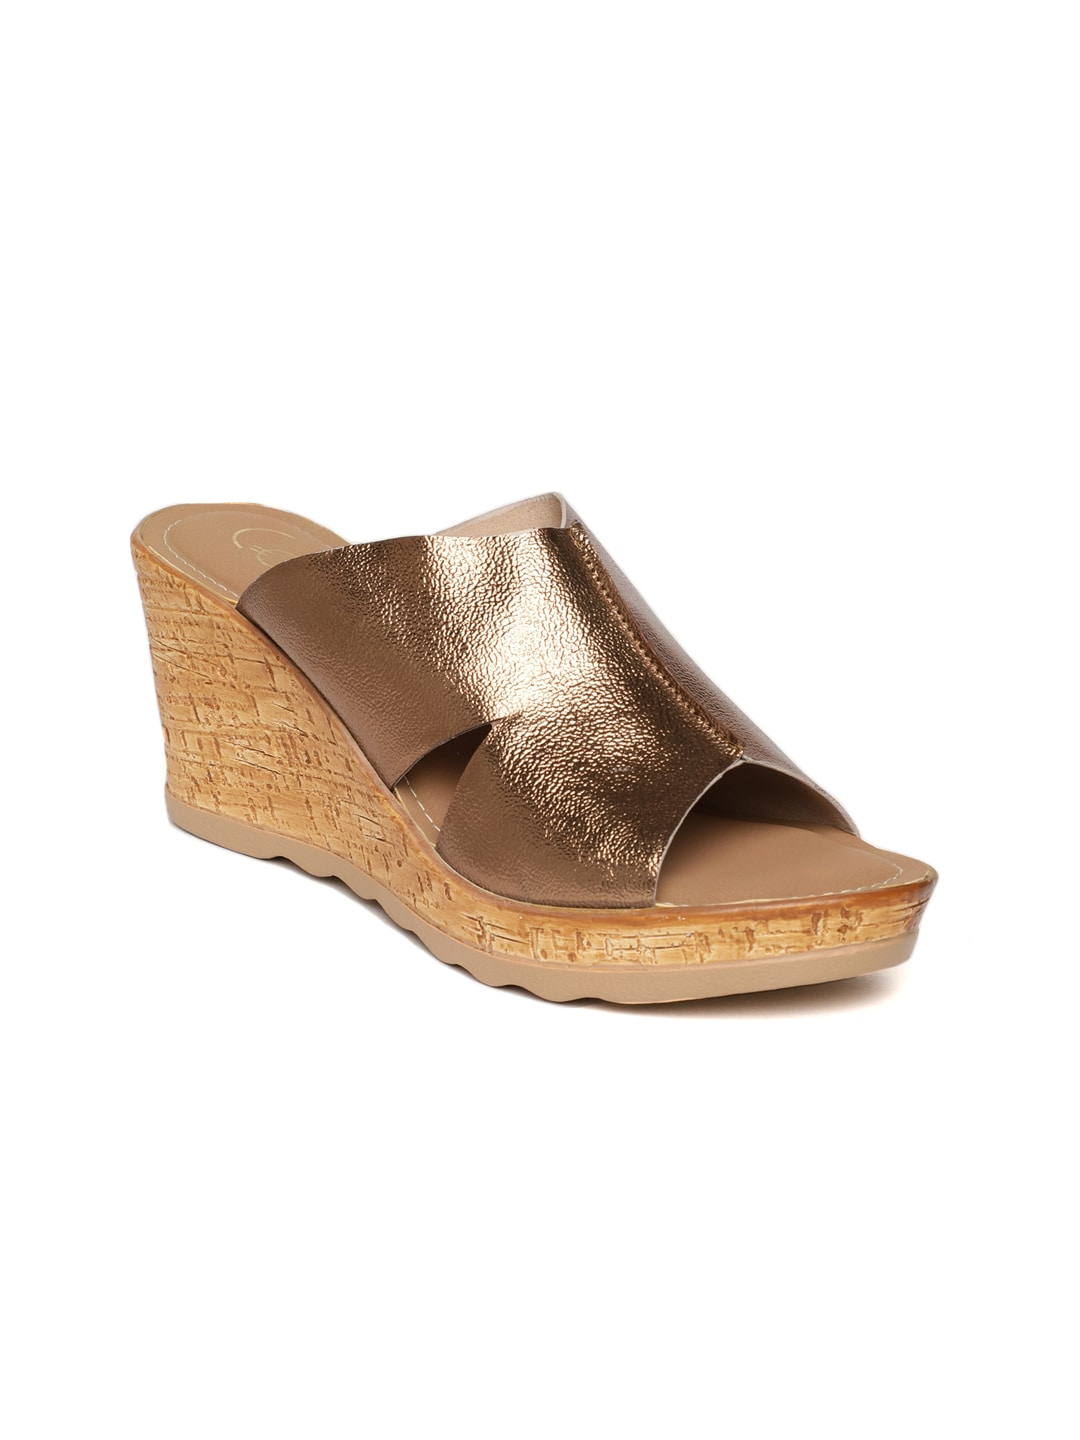 55730c068f2 Catwalk Wedges - Buy Catwalk Wedges online in India